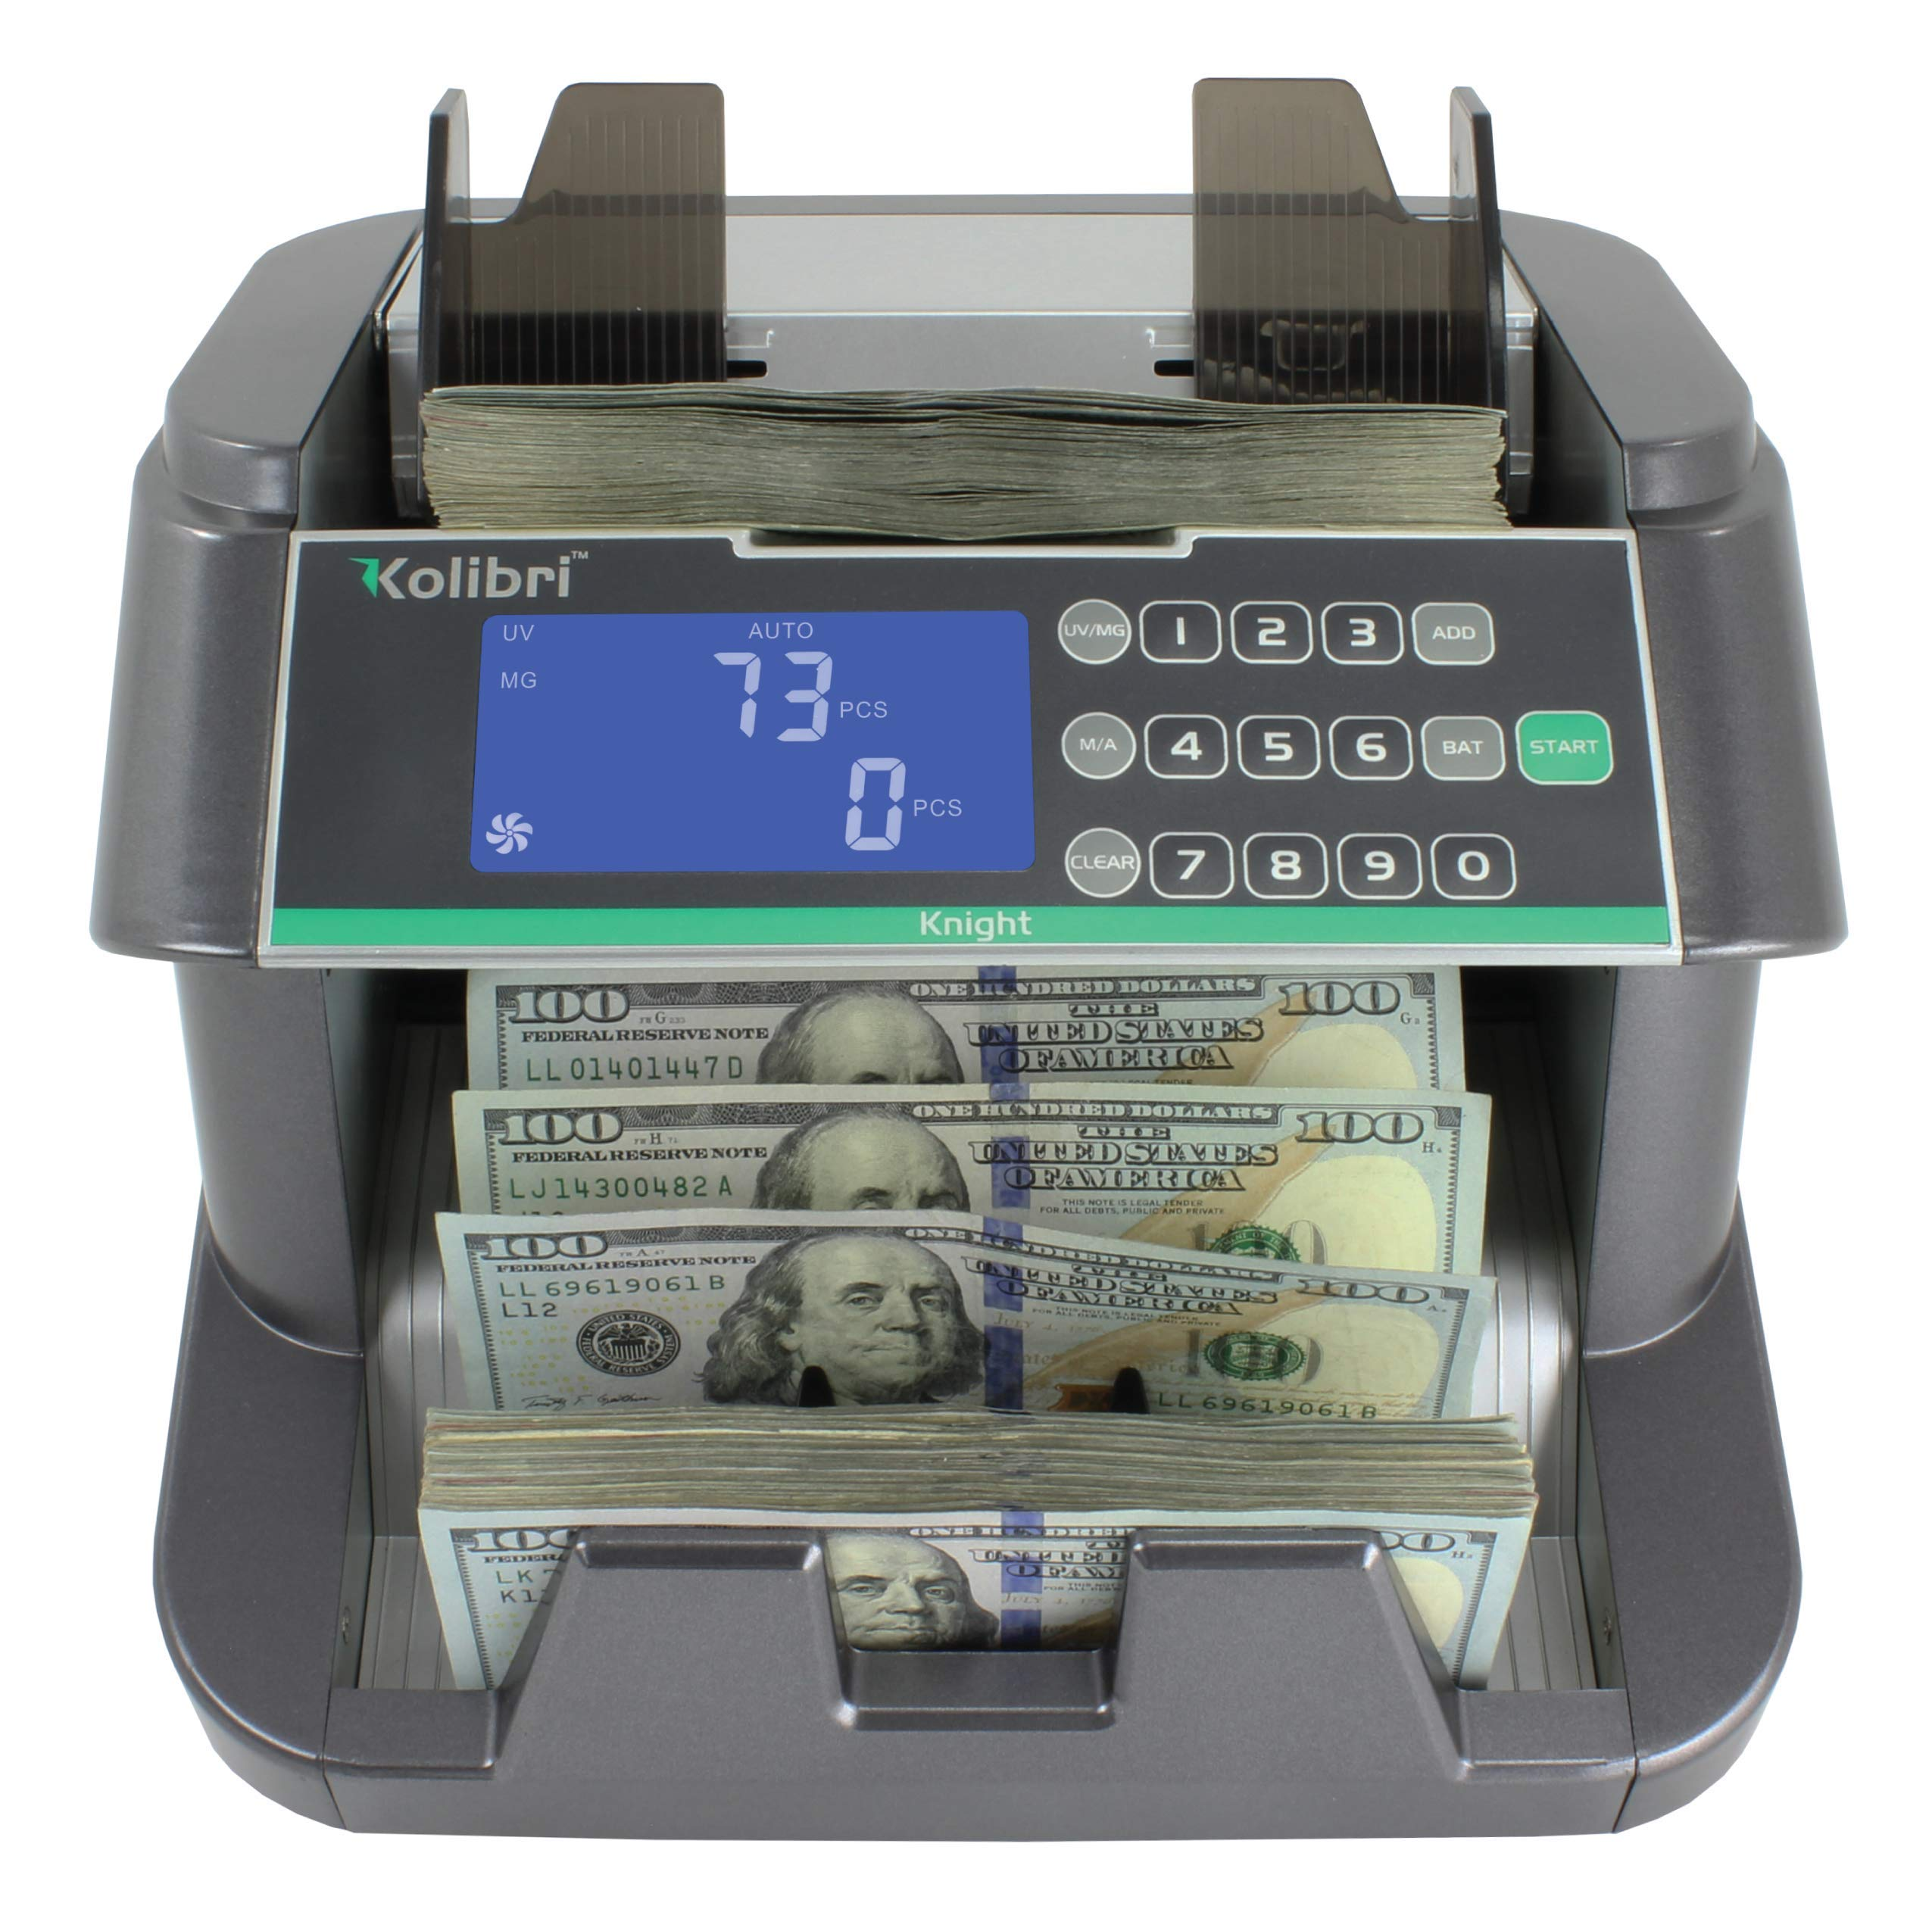 Kolibri Knight Money Bill Counting Machine with UV, MG, IR, HF, DB Counterfeit Detection, Top Loading Cash Counter with Batch and Add Modes - Speed 1,250 Notes/Min – US-Based Company & 1-Year Warranty